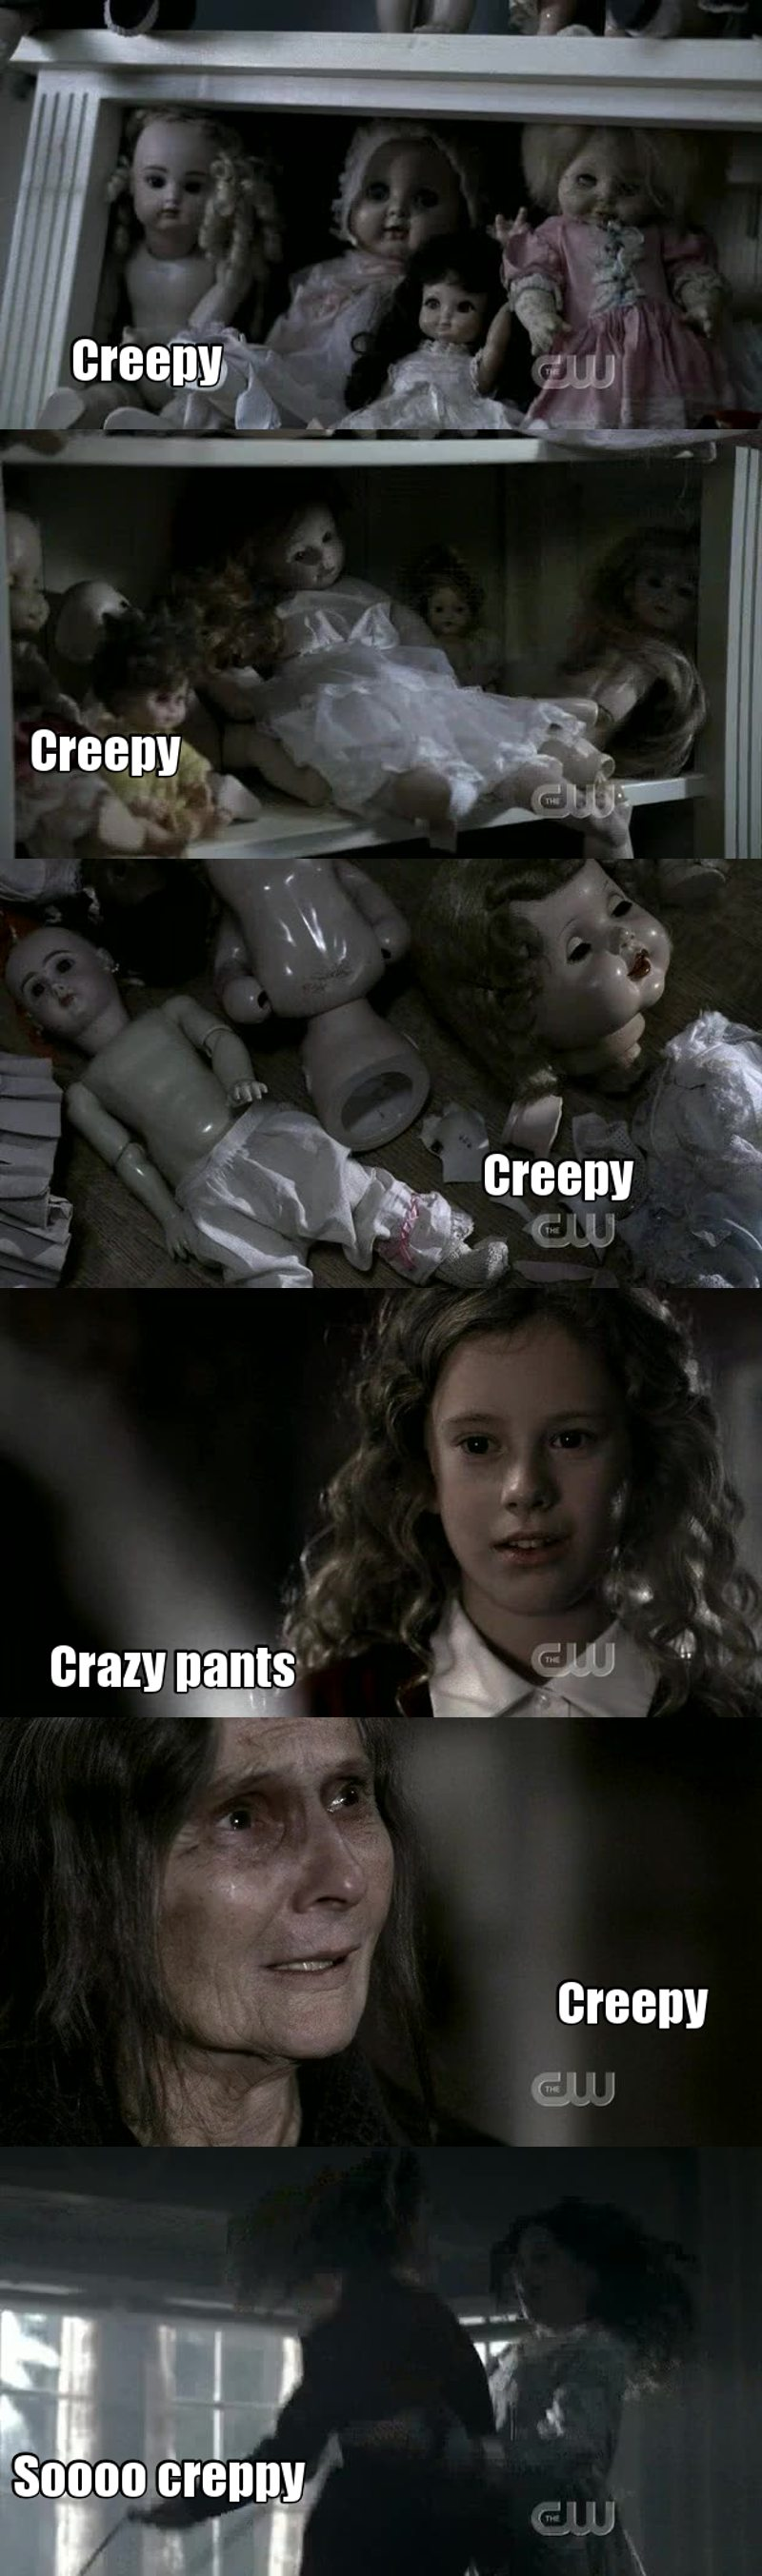 Ok this whole episode was creepy AF